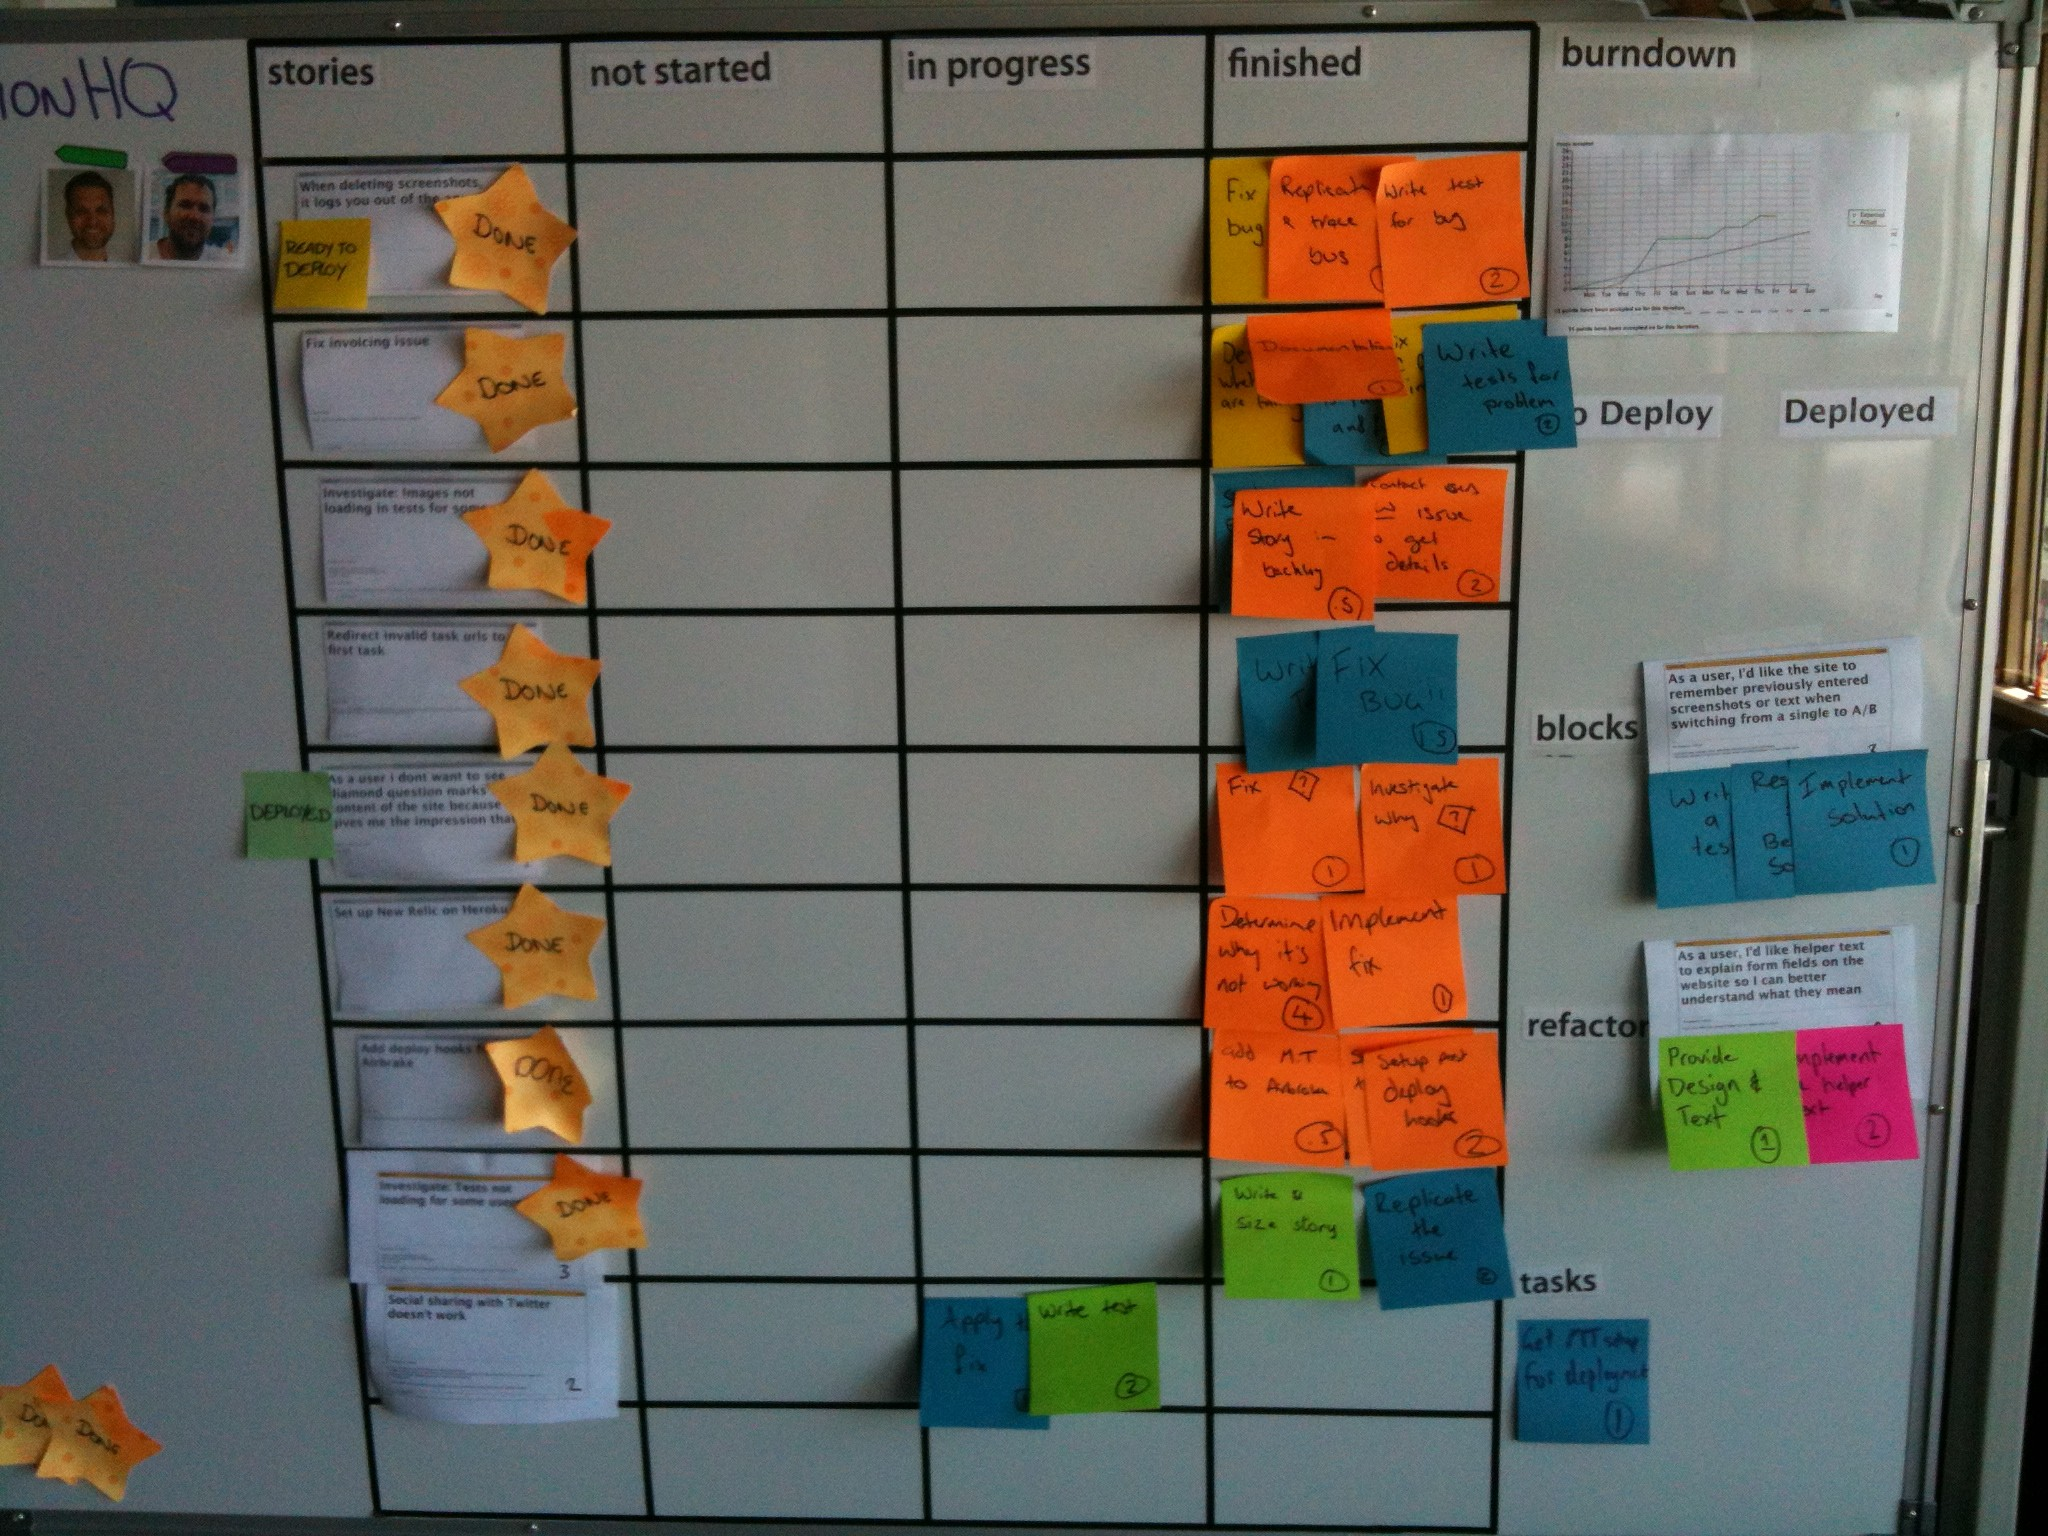 The IntuitionHQ Scrum Board